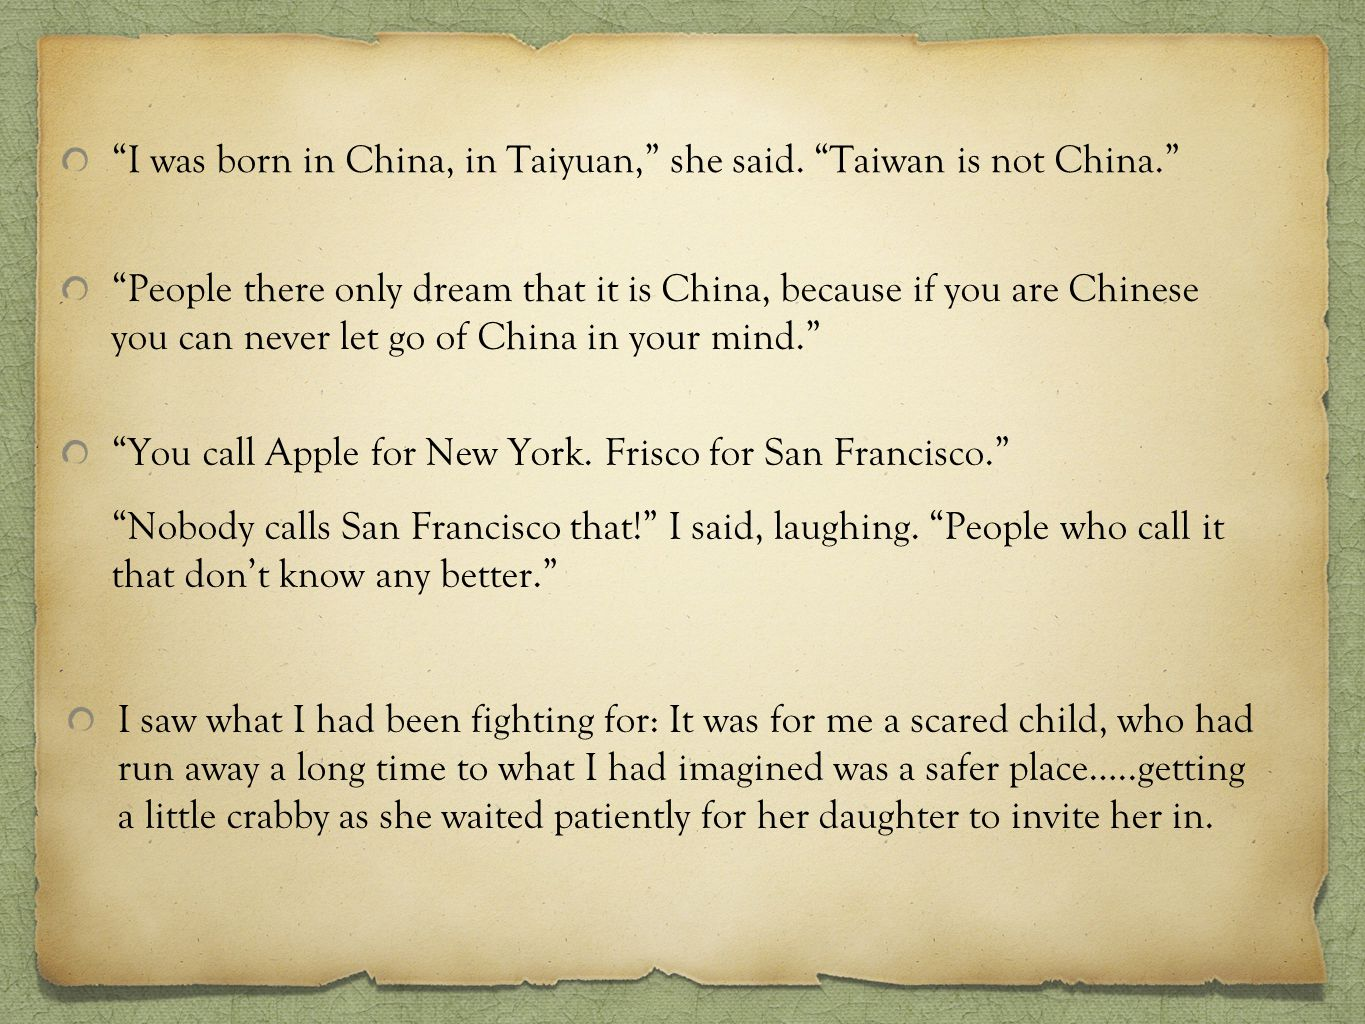 I was born in China, in Taiyuan, she said. Taiwan is not China.